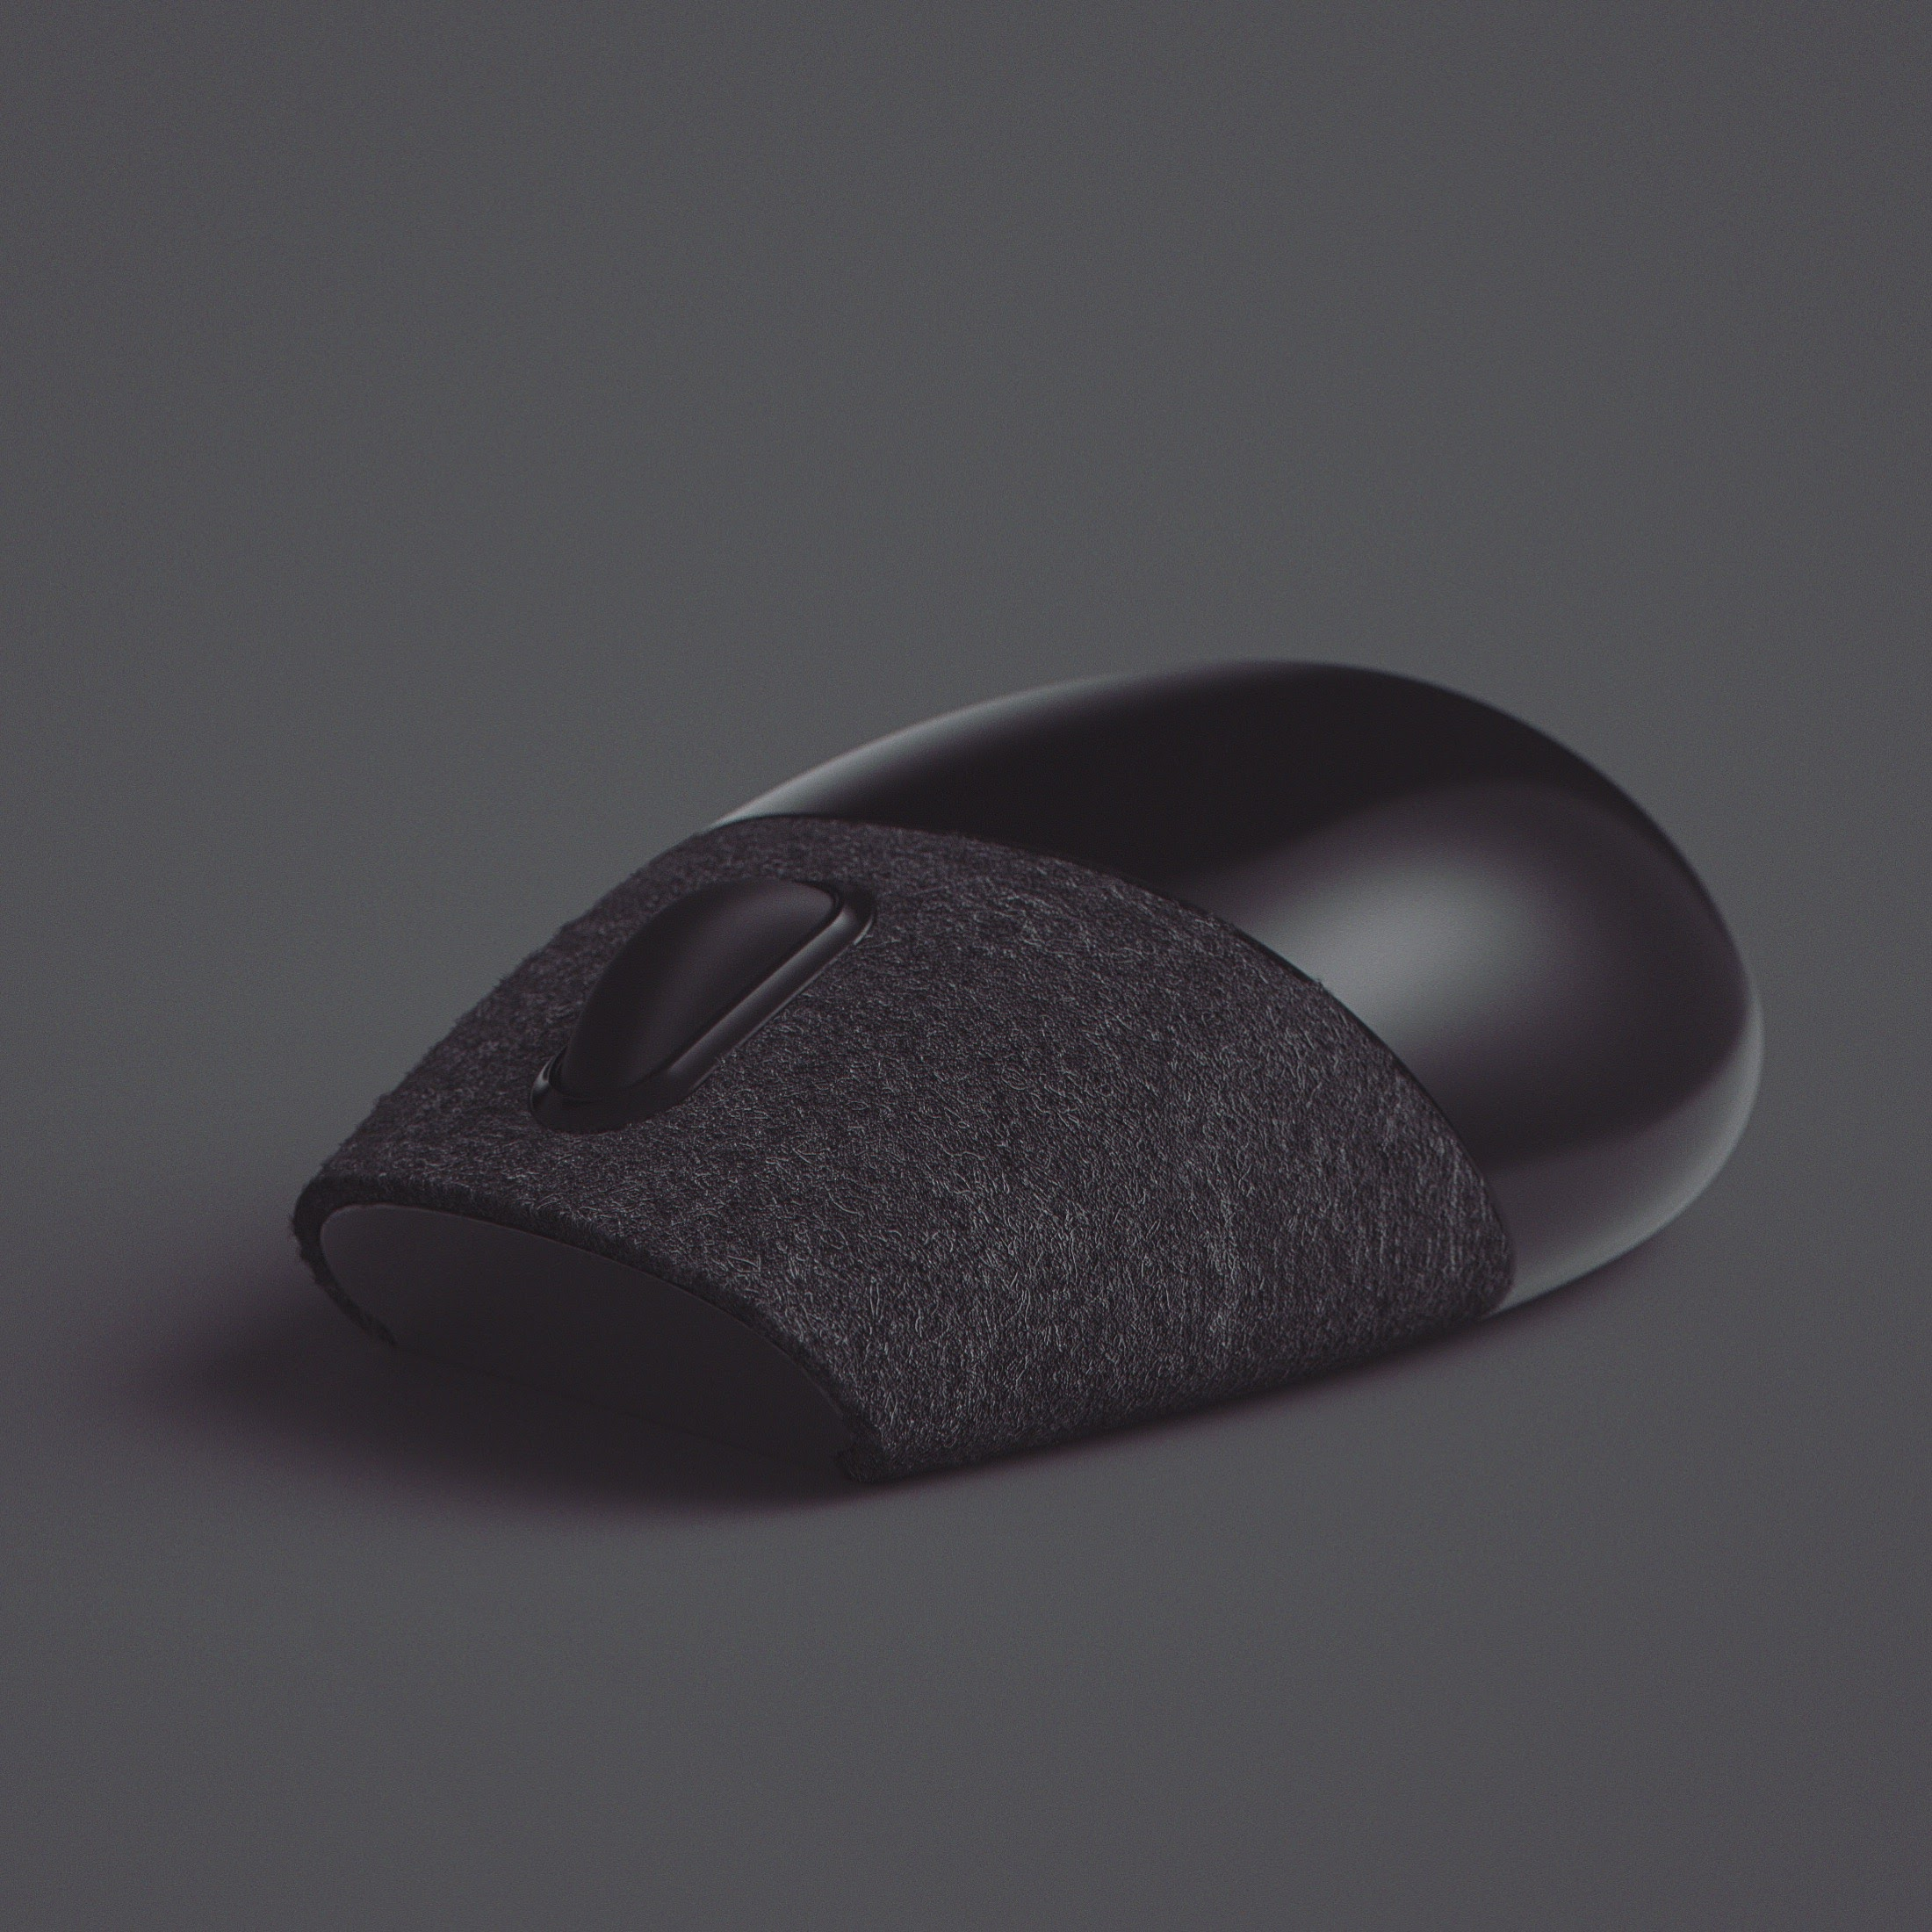 felt covered mouse hides buttons and adds intimacy